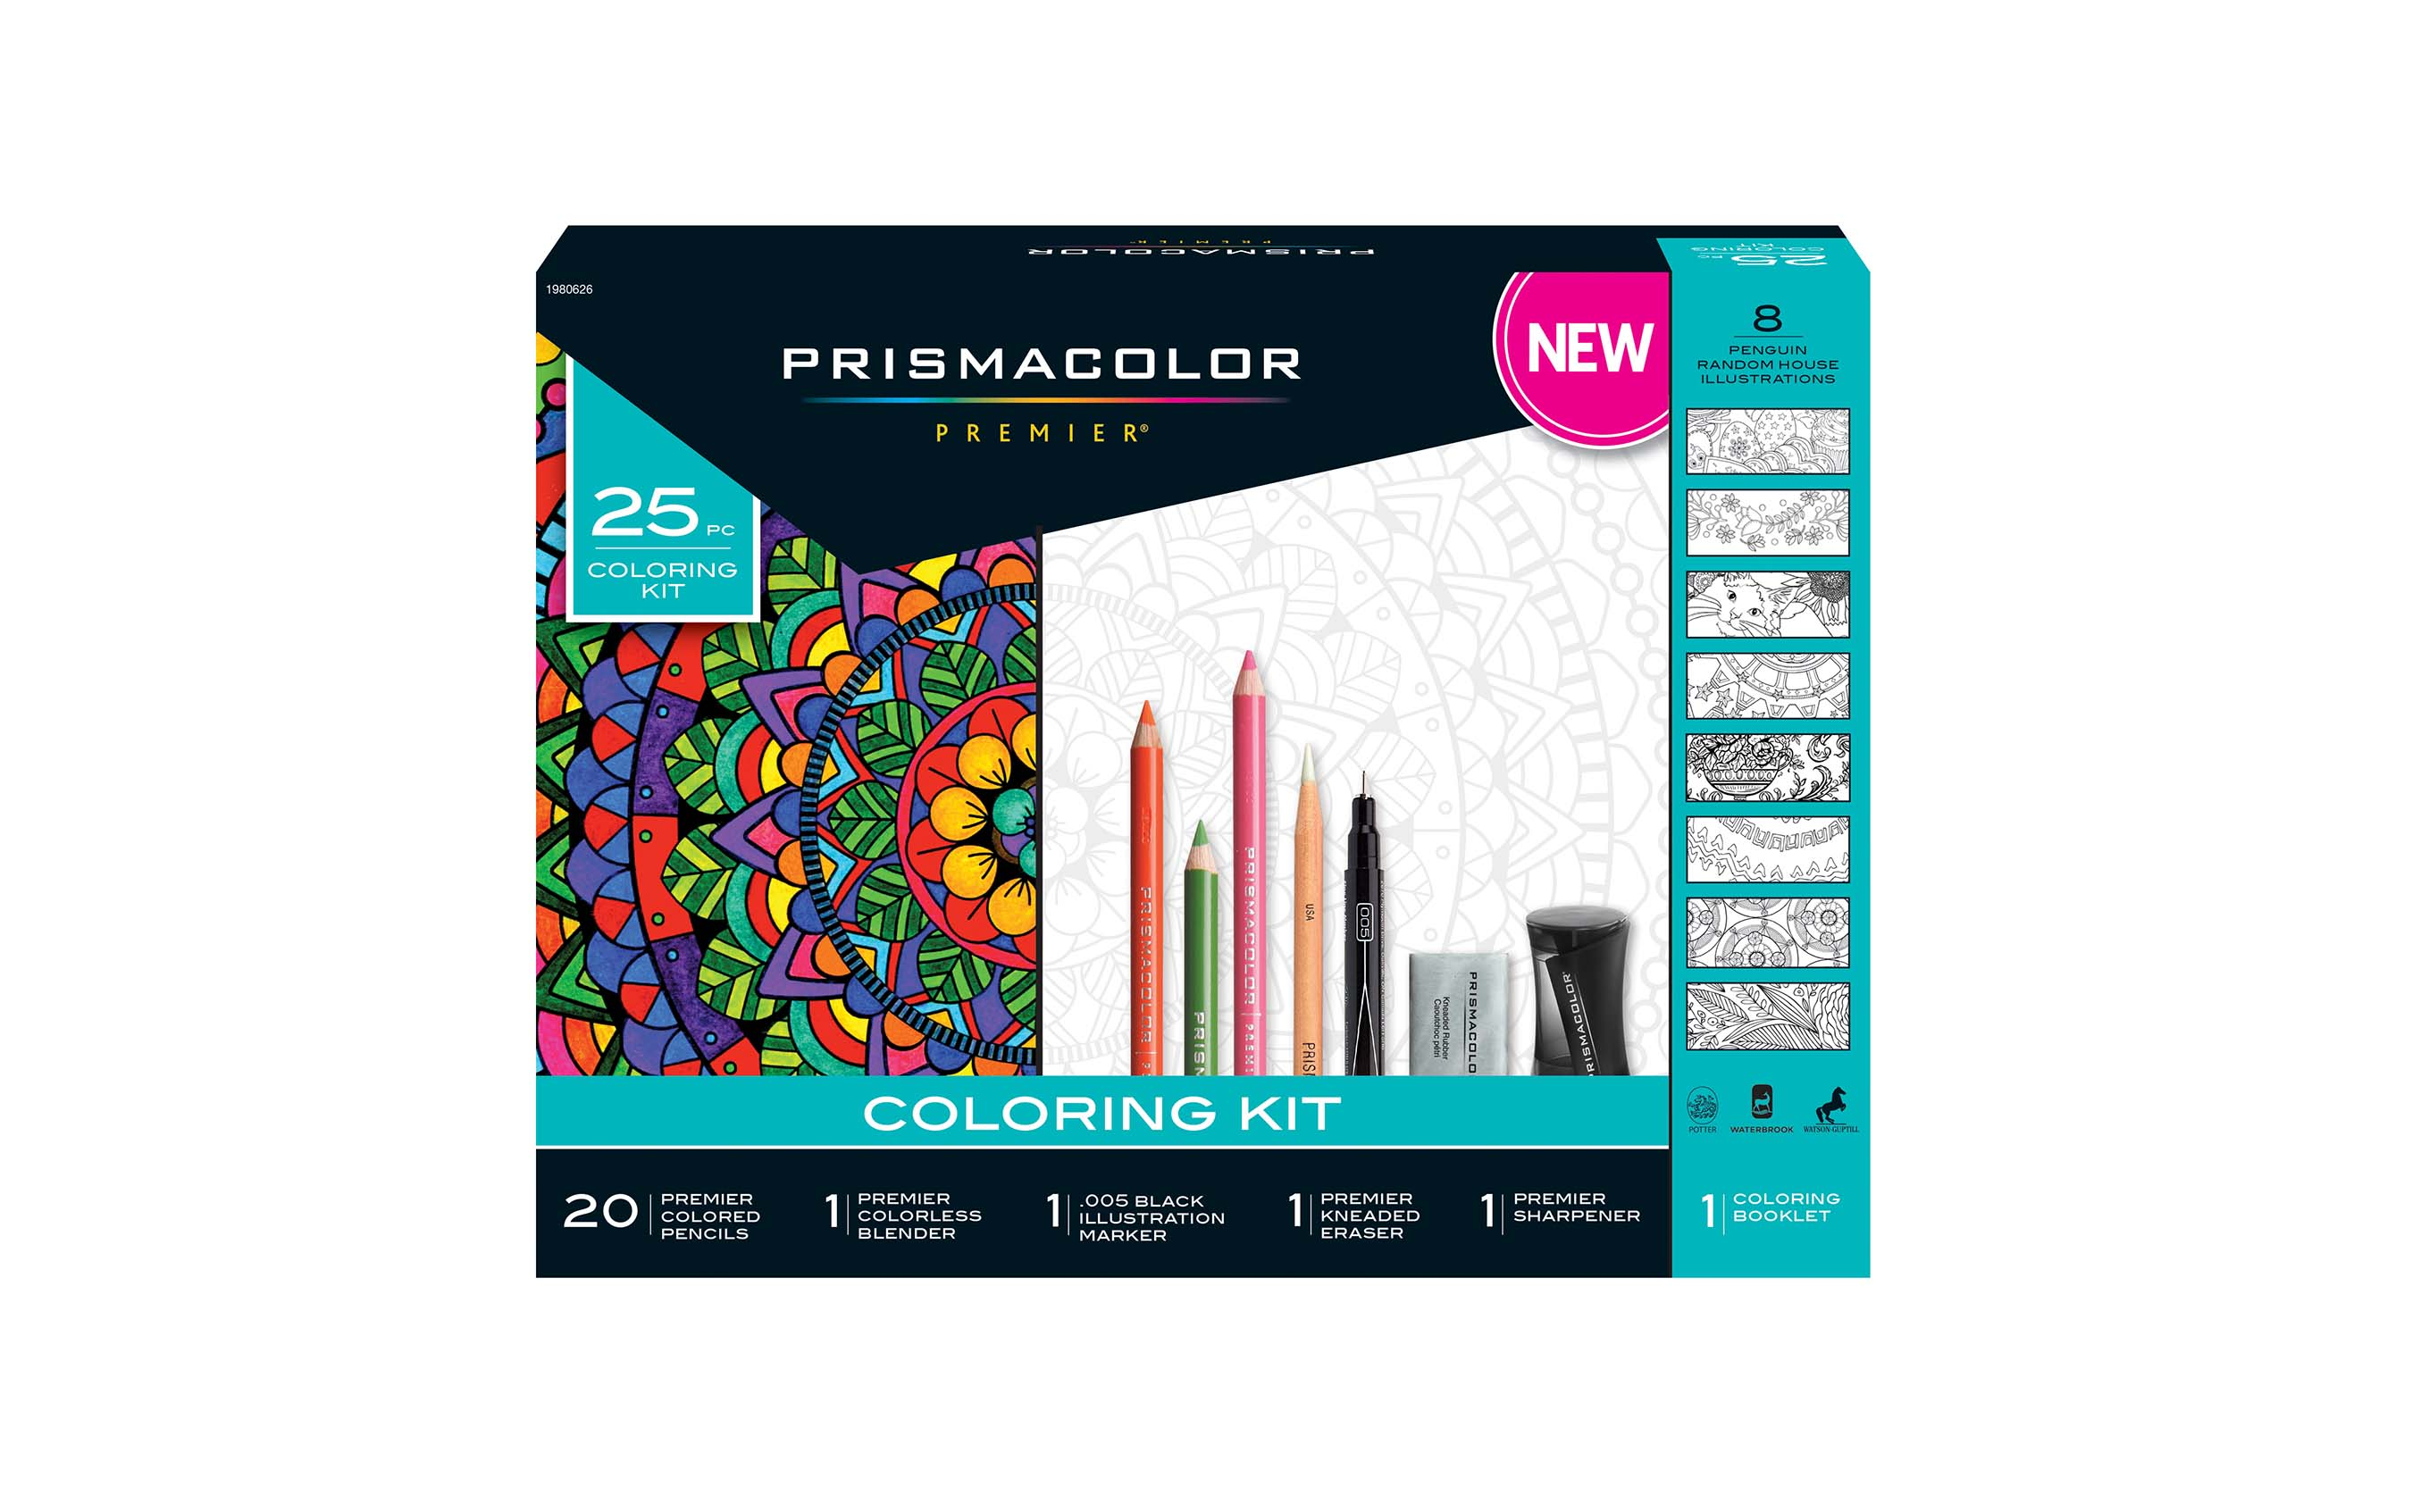 PrismacolorR Celebrates National Relaxation Day With The Launch Of A New 29 Piece Adult Coloring Kit